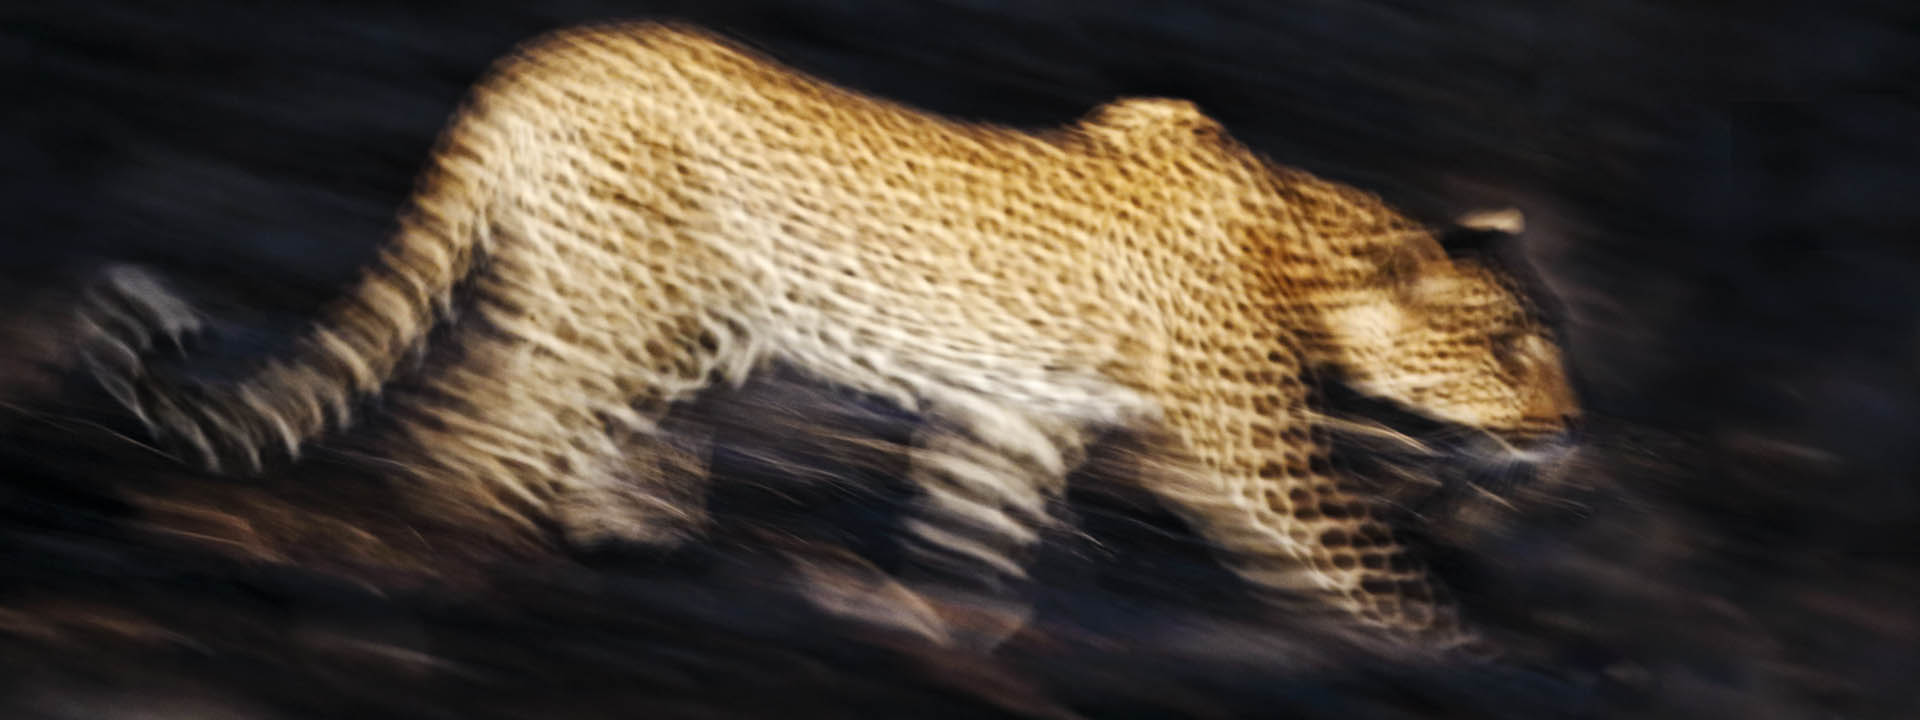 Leopard Blurred